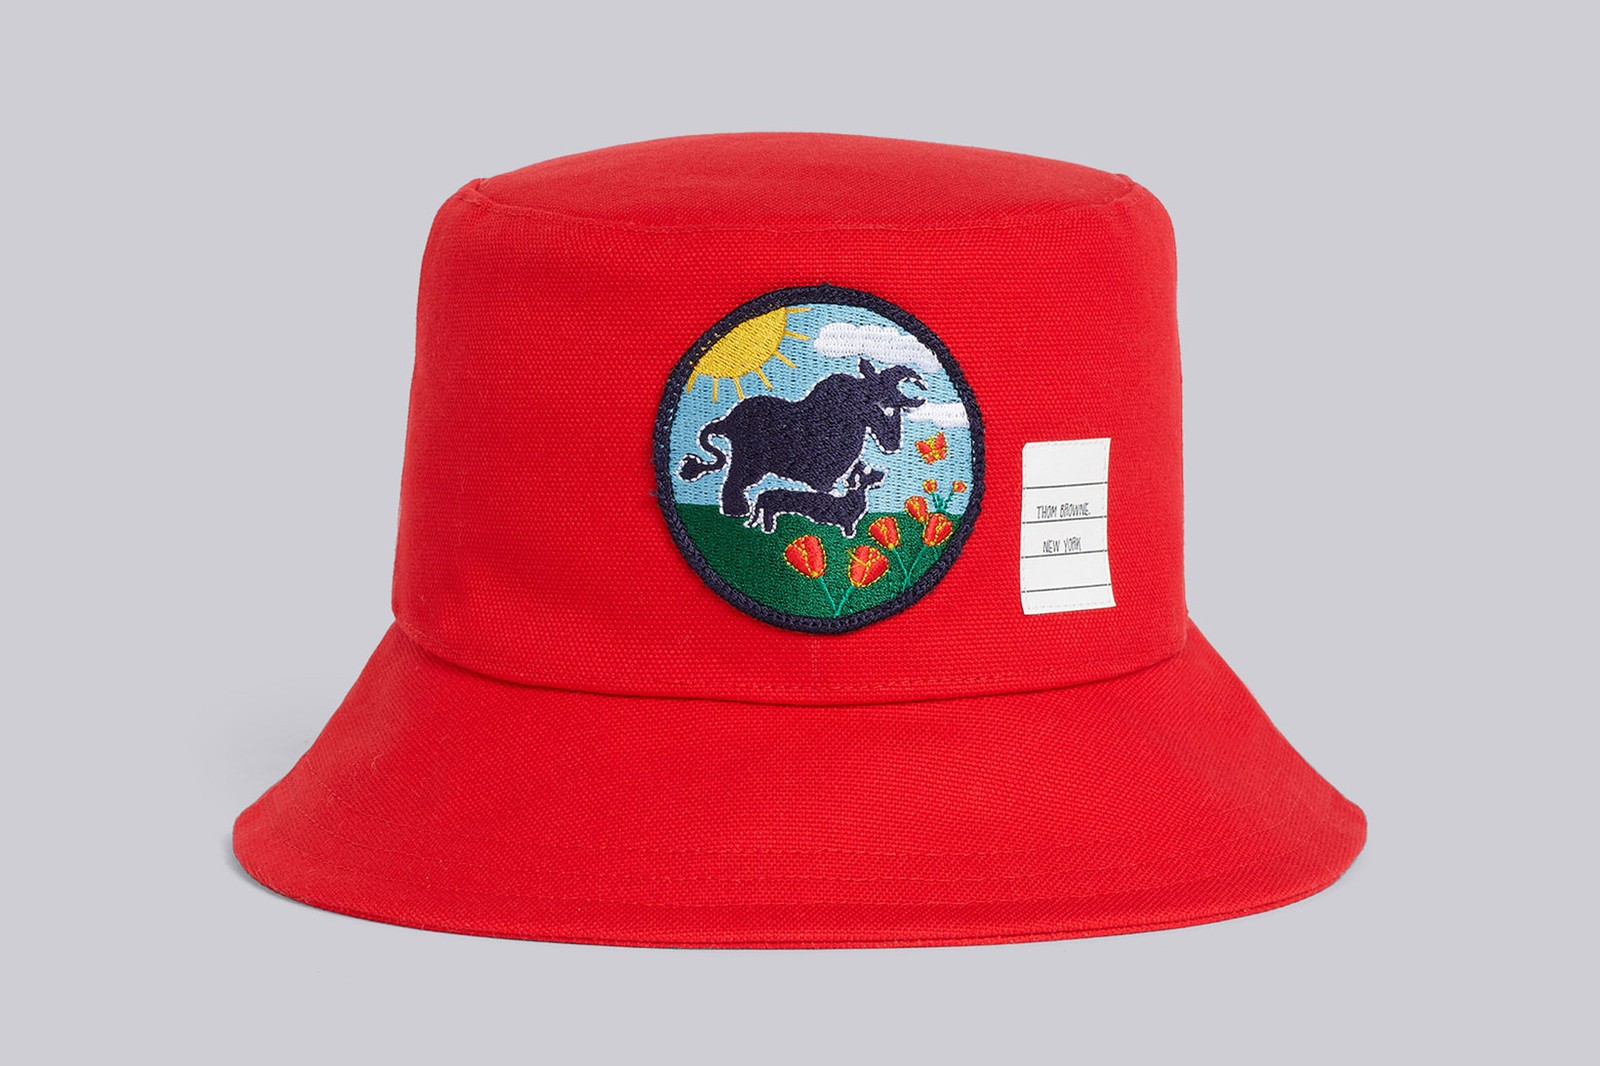 thom browne lunar new year capsule collection ox bucket hat scarf patch price where to buy